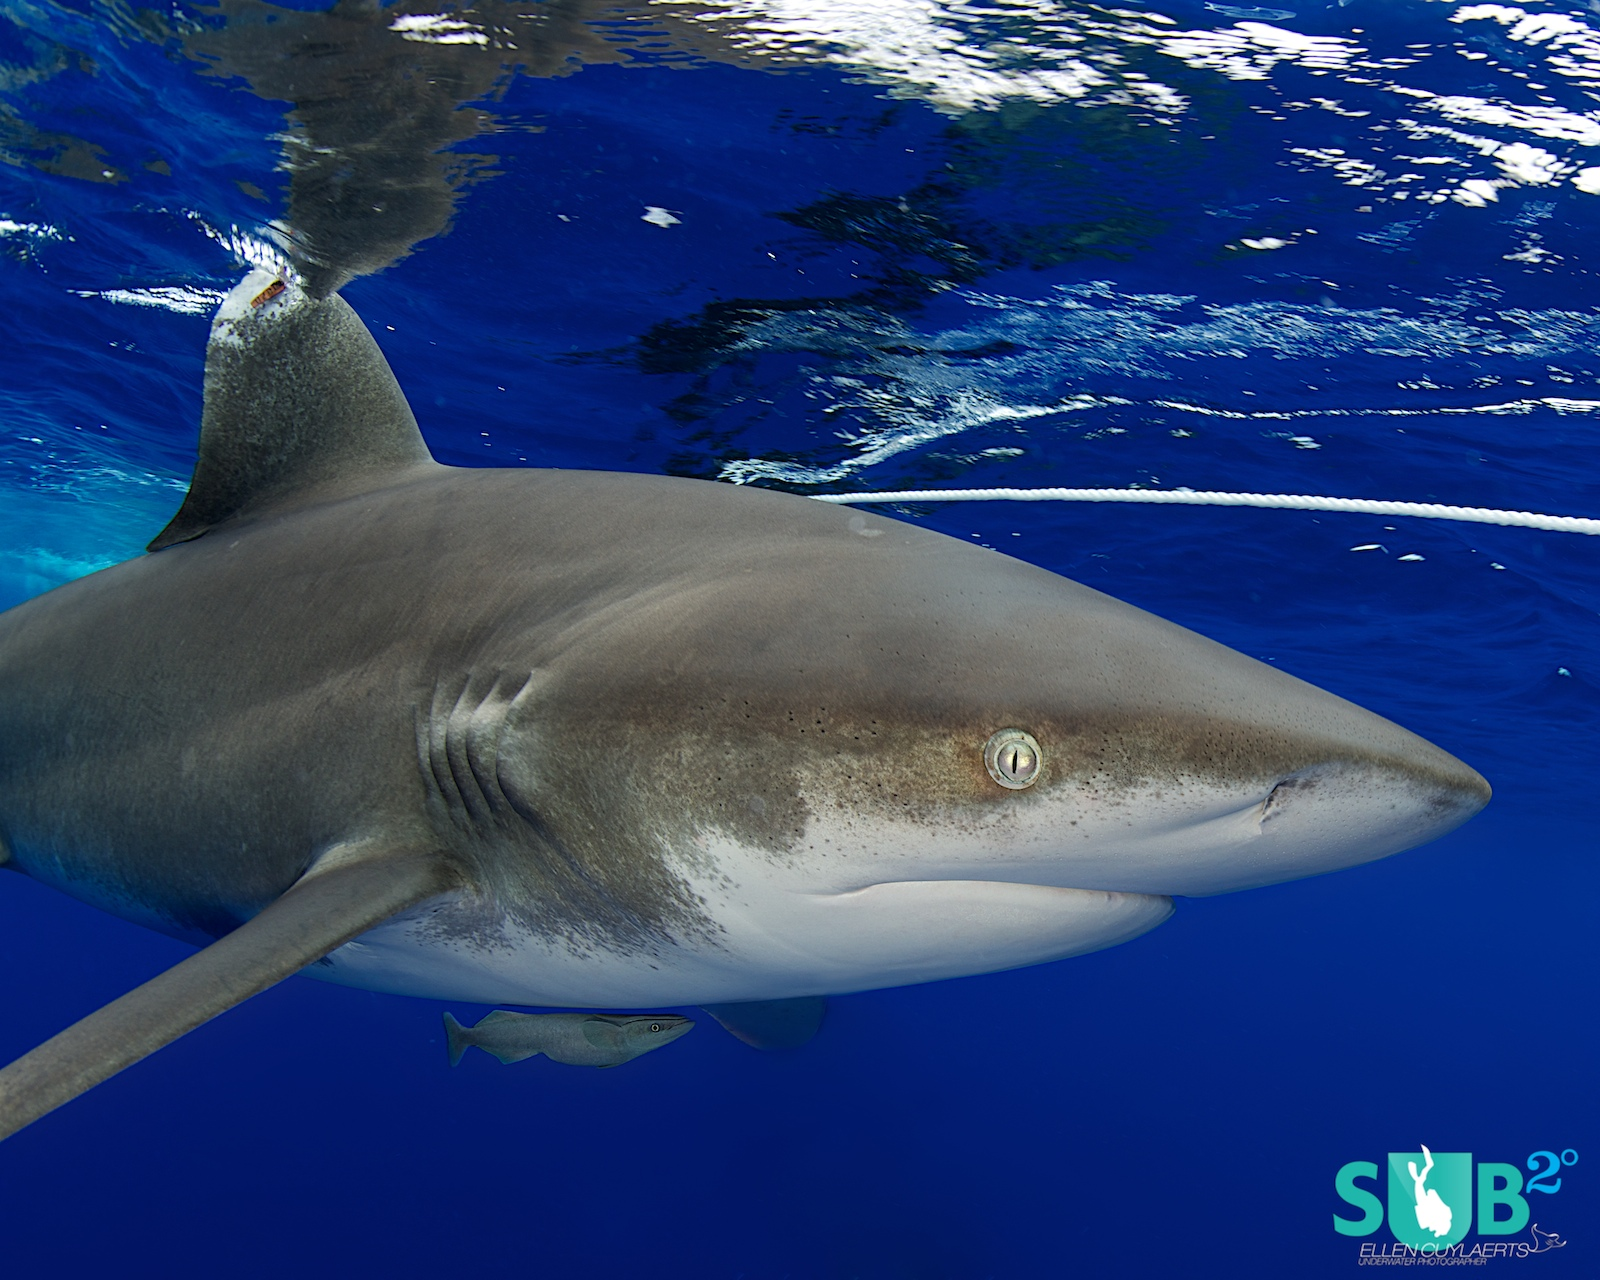 To encounter a shark this close is an opportunity not given to everyone! Enjoy the moment and stay alert!